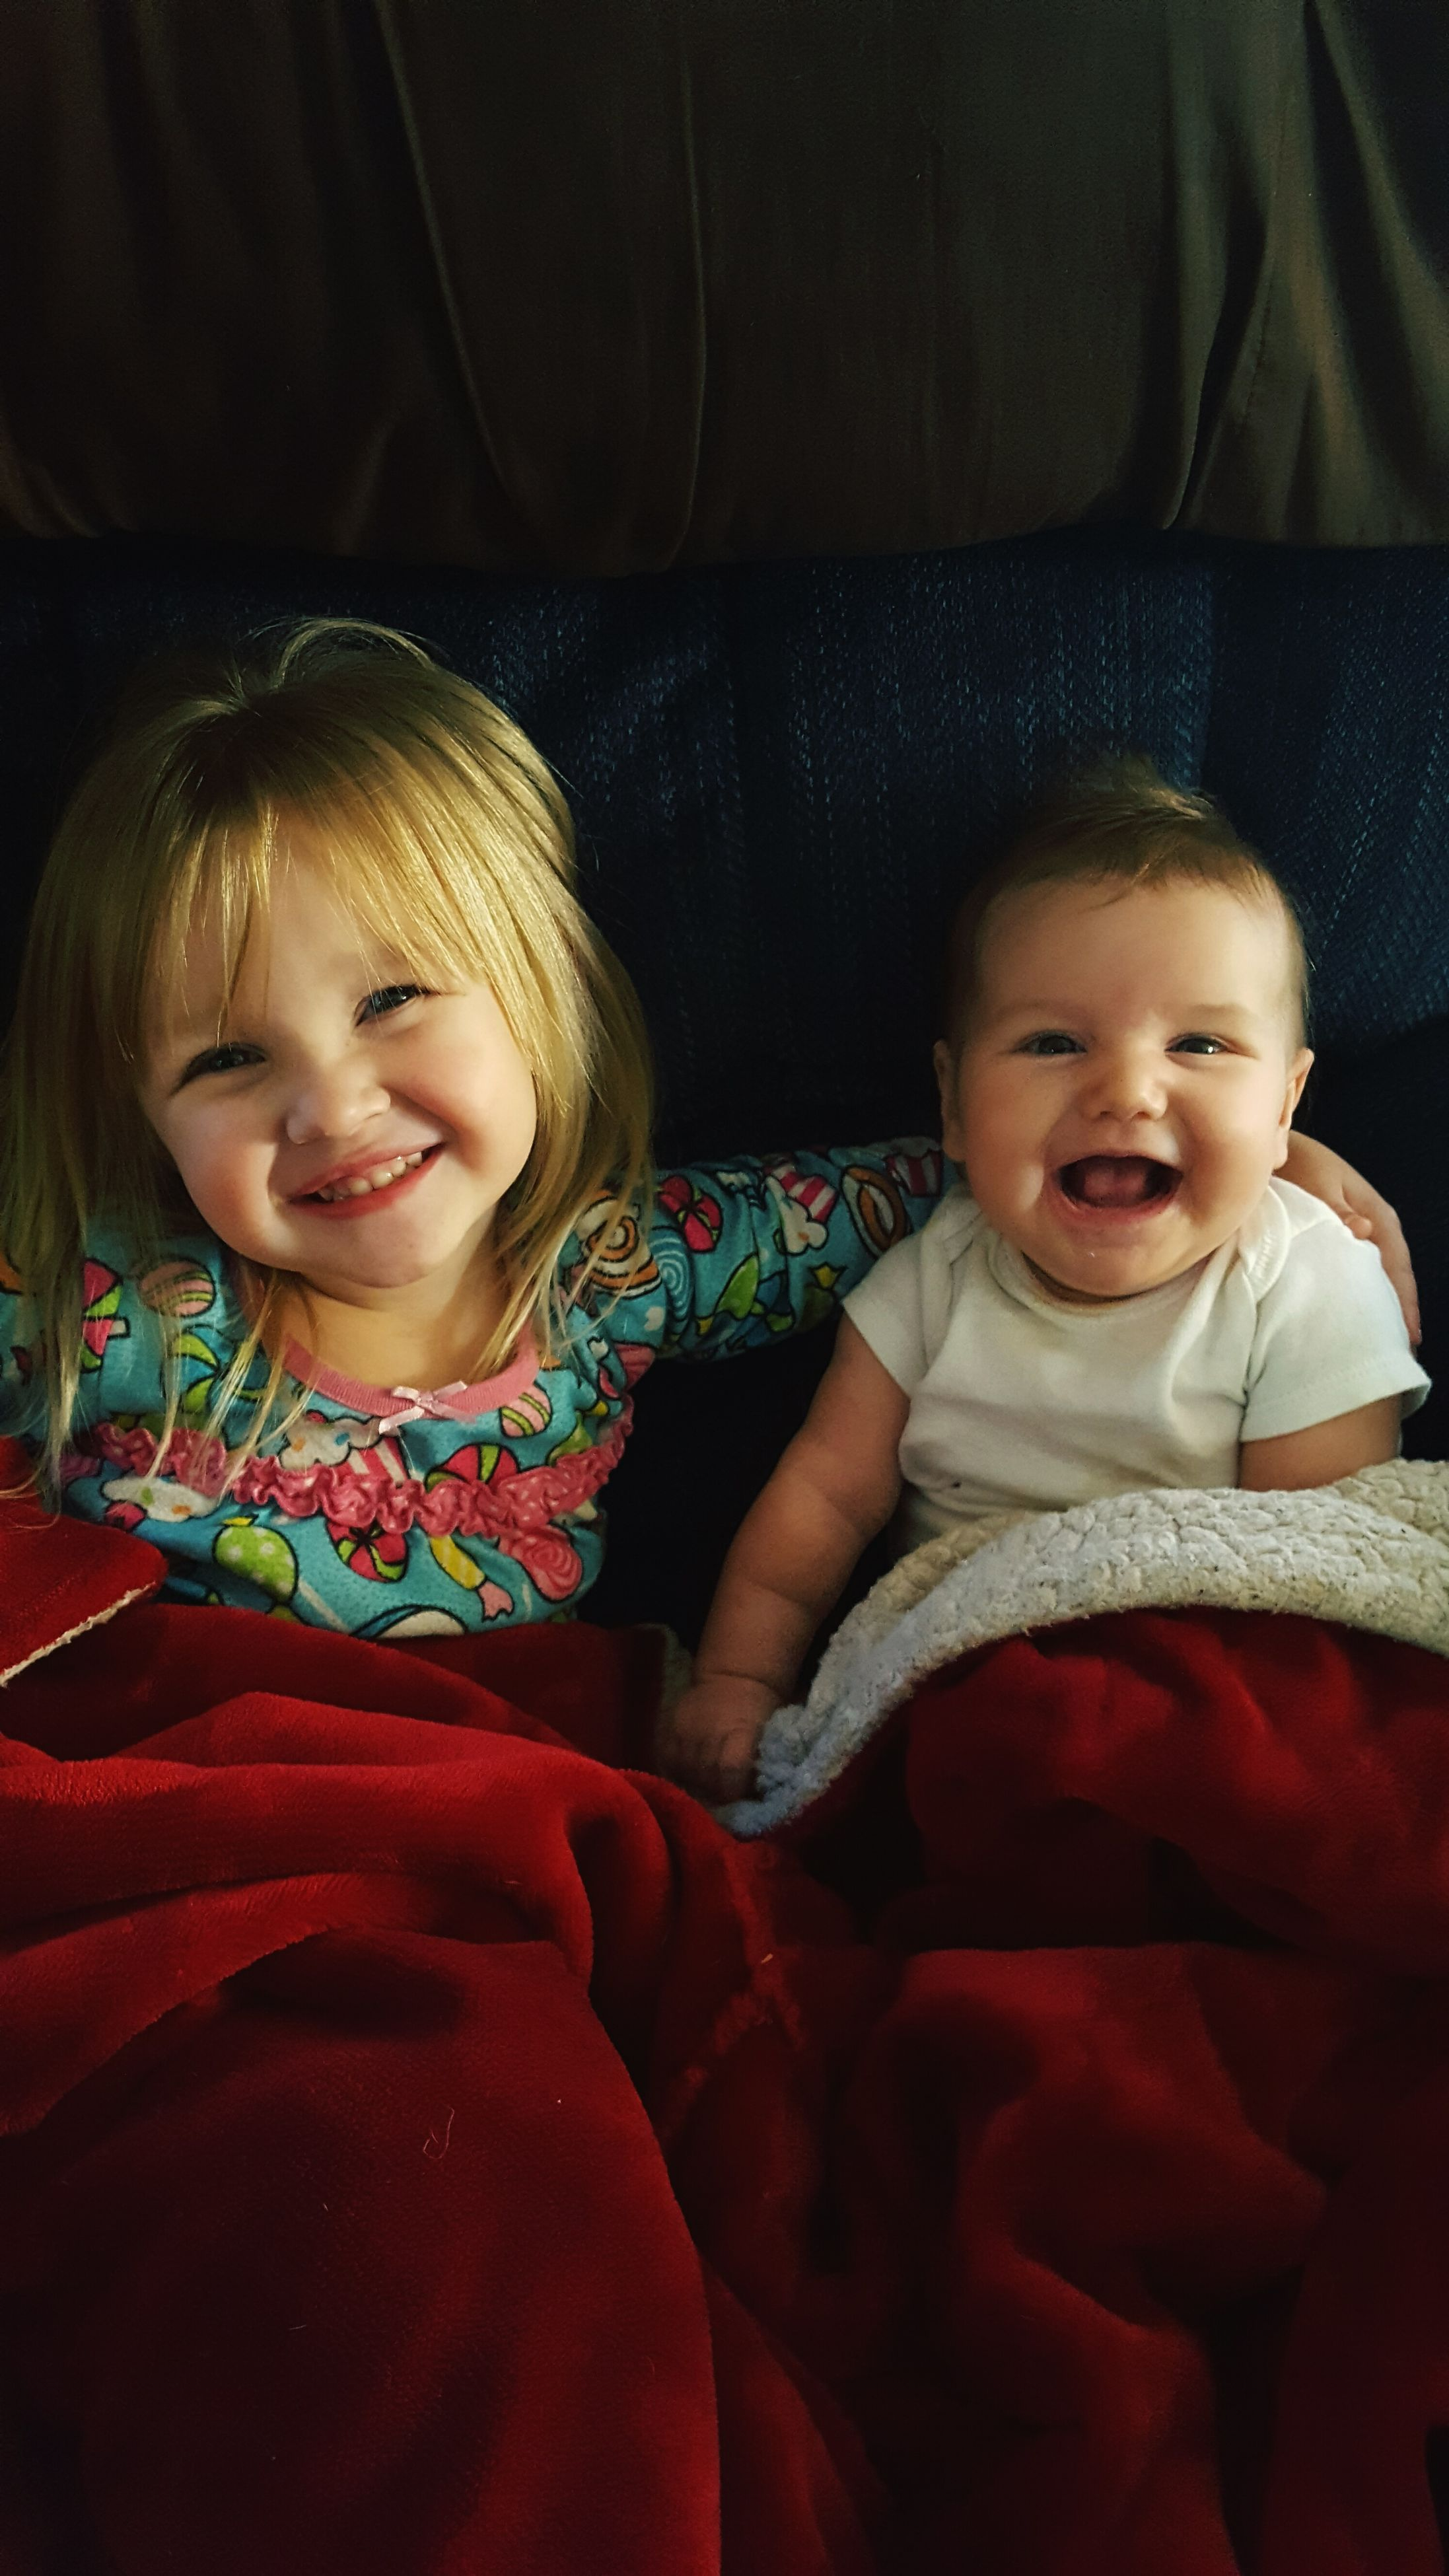 two people, innocence, togetherness, childhood, cute, happiness, family, bonding, casual clothing, smiling, baby, males, babyhood, portrait, cheerful, indoors, real people, people, adult, day